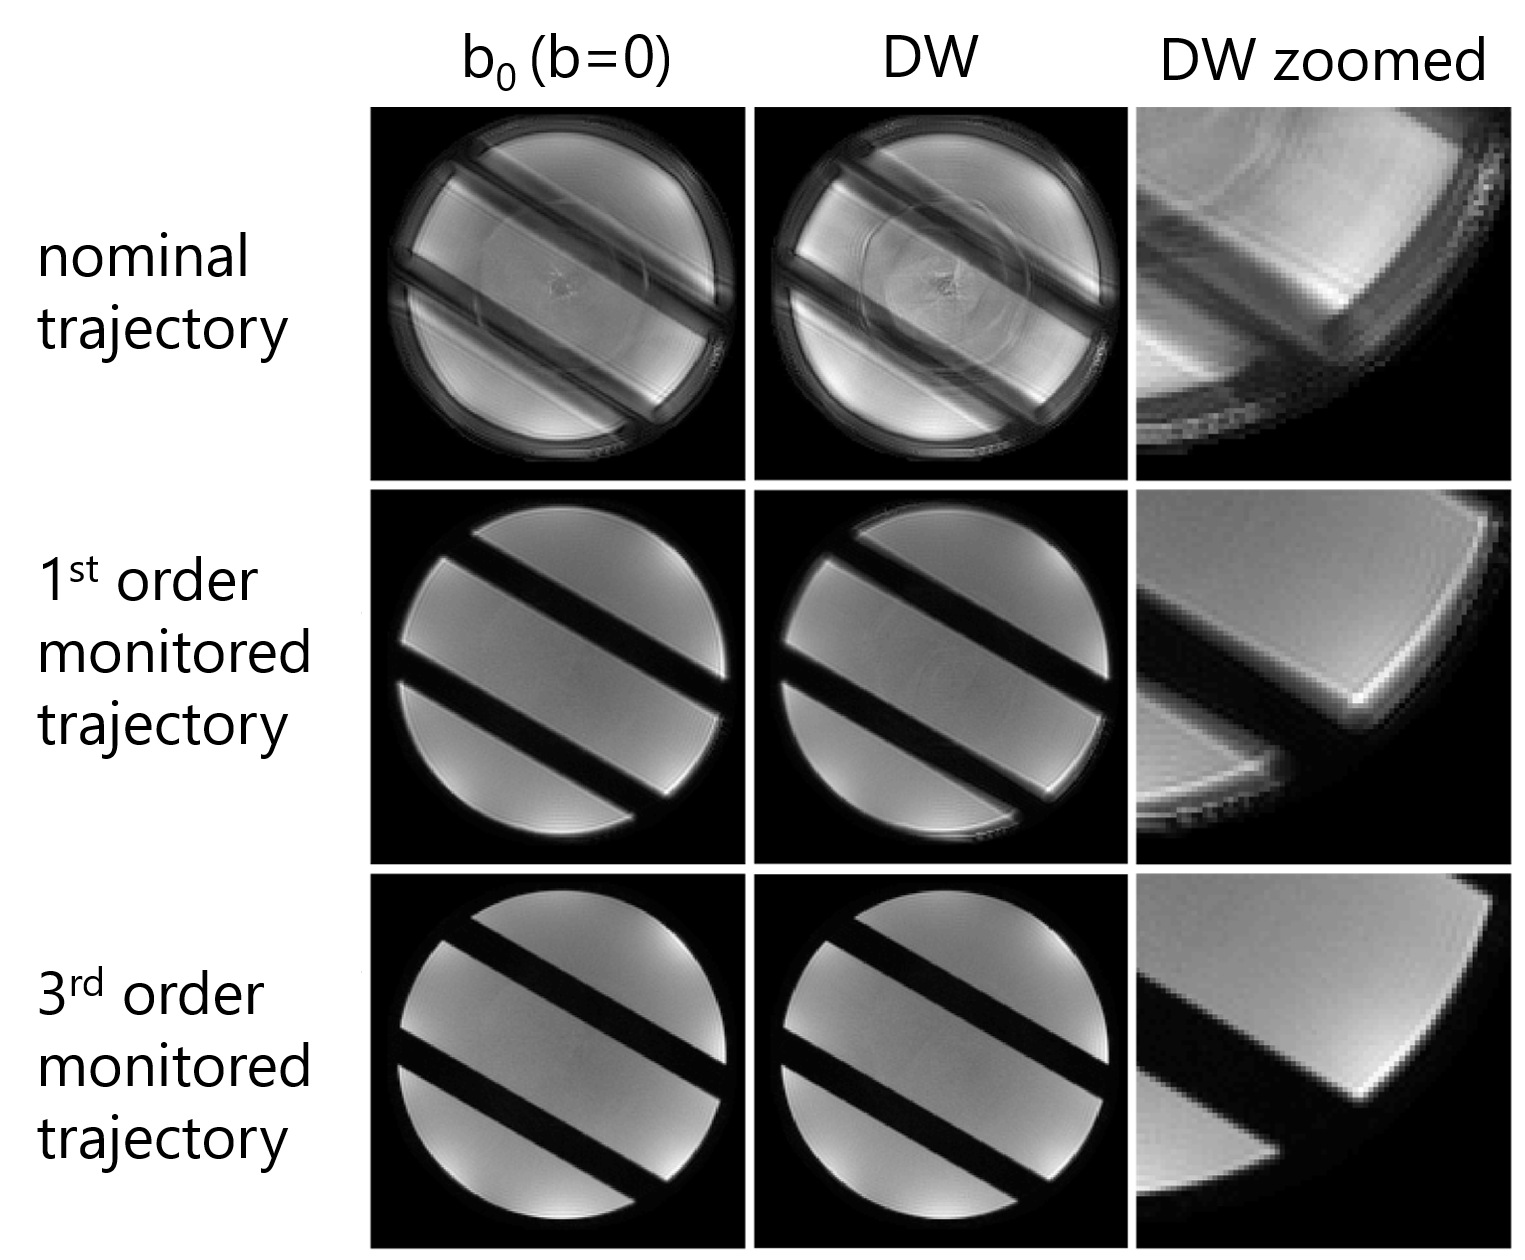 Single-shot spiral diffusion images reconstructed based on nominal and field-monitored trajectories up to third order.